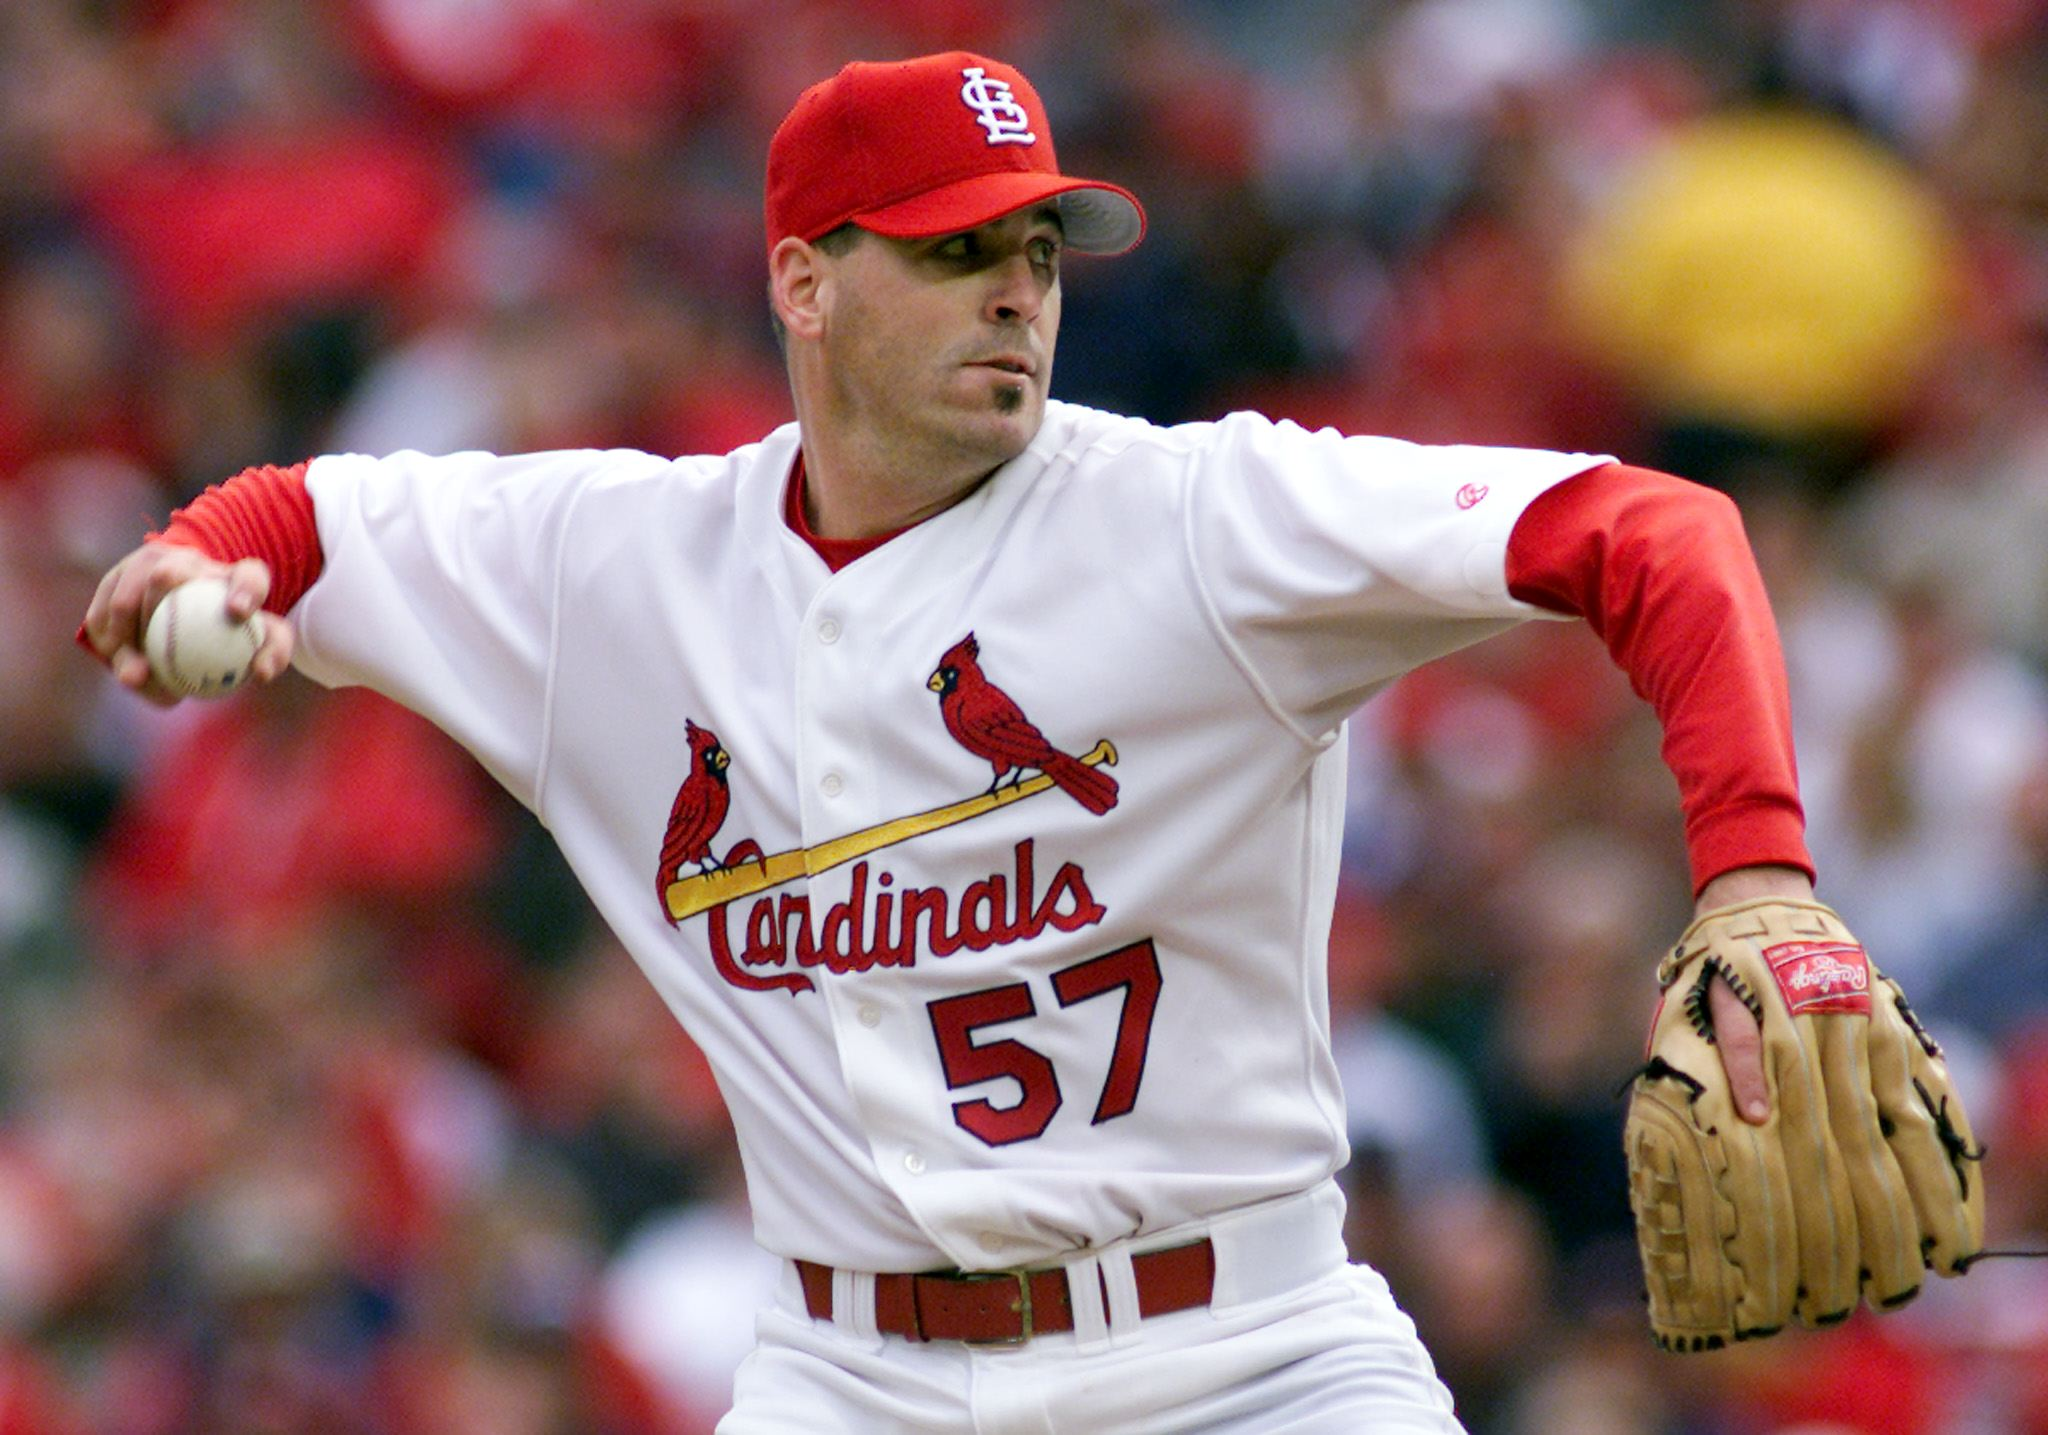 Darryl Kile threw a no-hitter and made three All-Star games in his career, but he tragically passed away in 2002 at the age of 33.